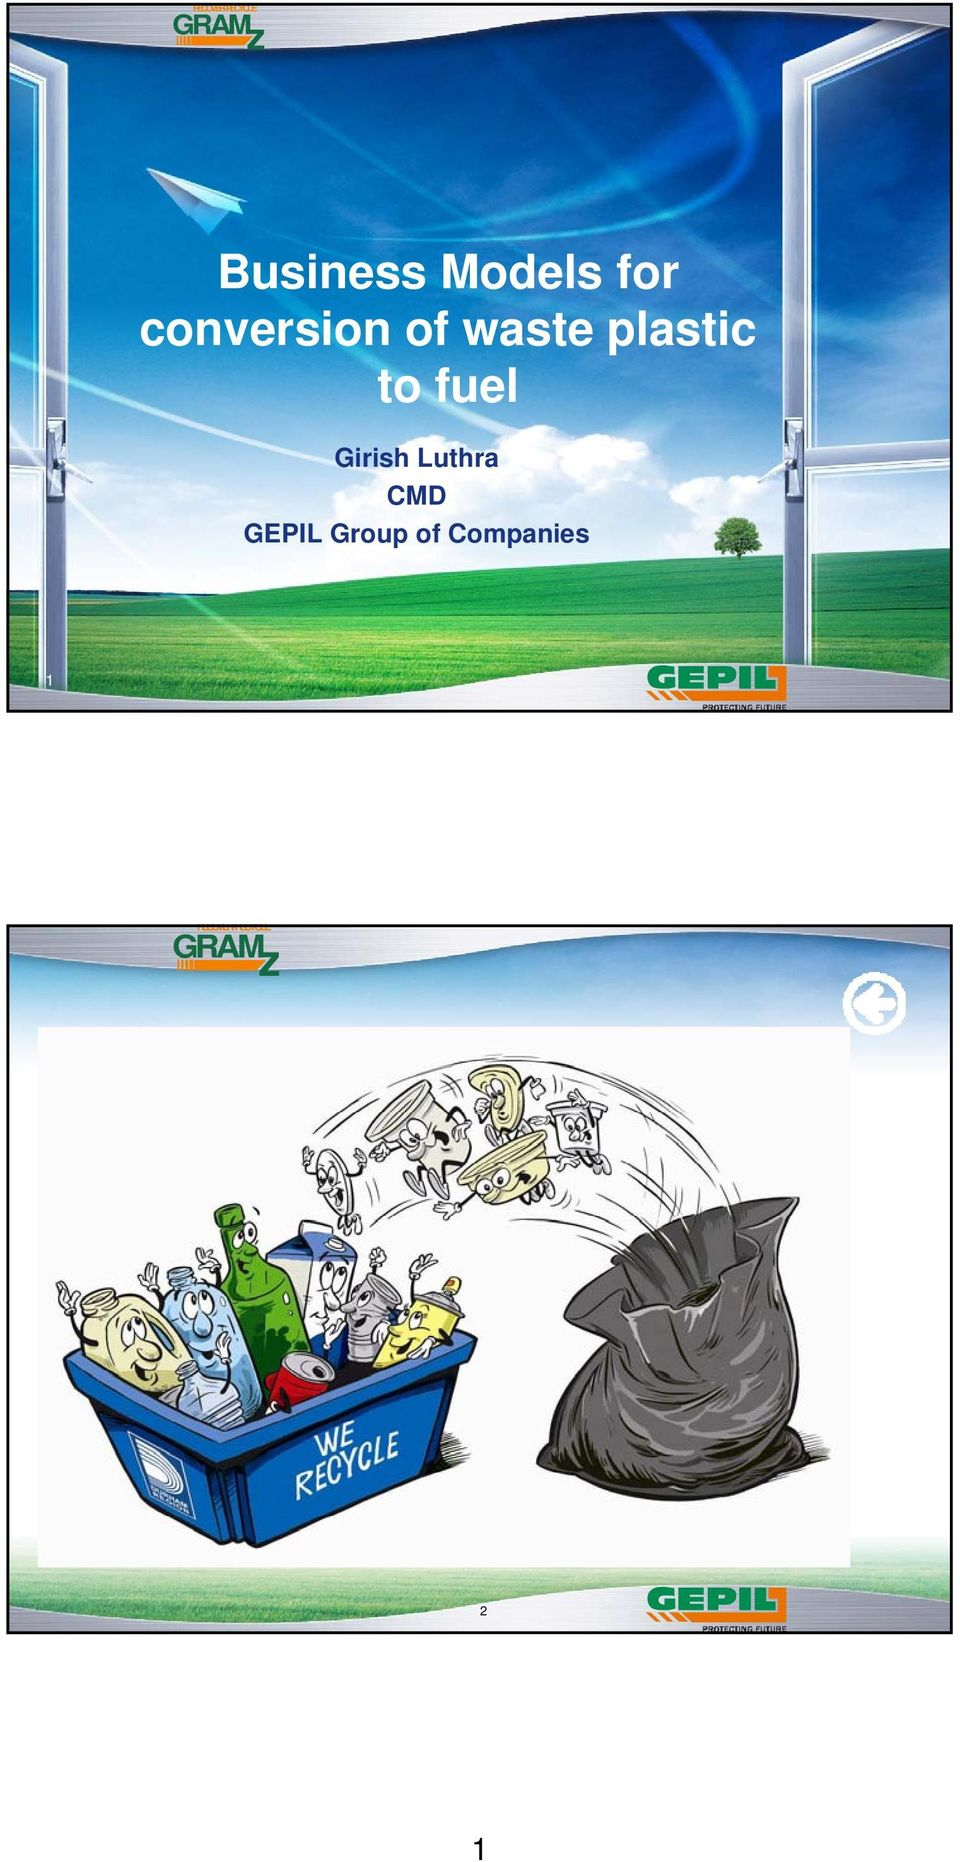 Business Models for conversion of waste plastic to fuel - PDF